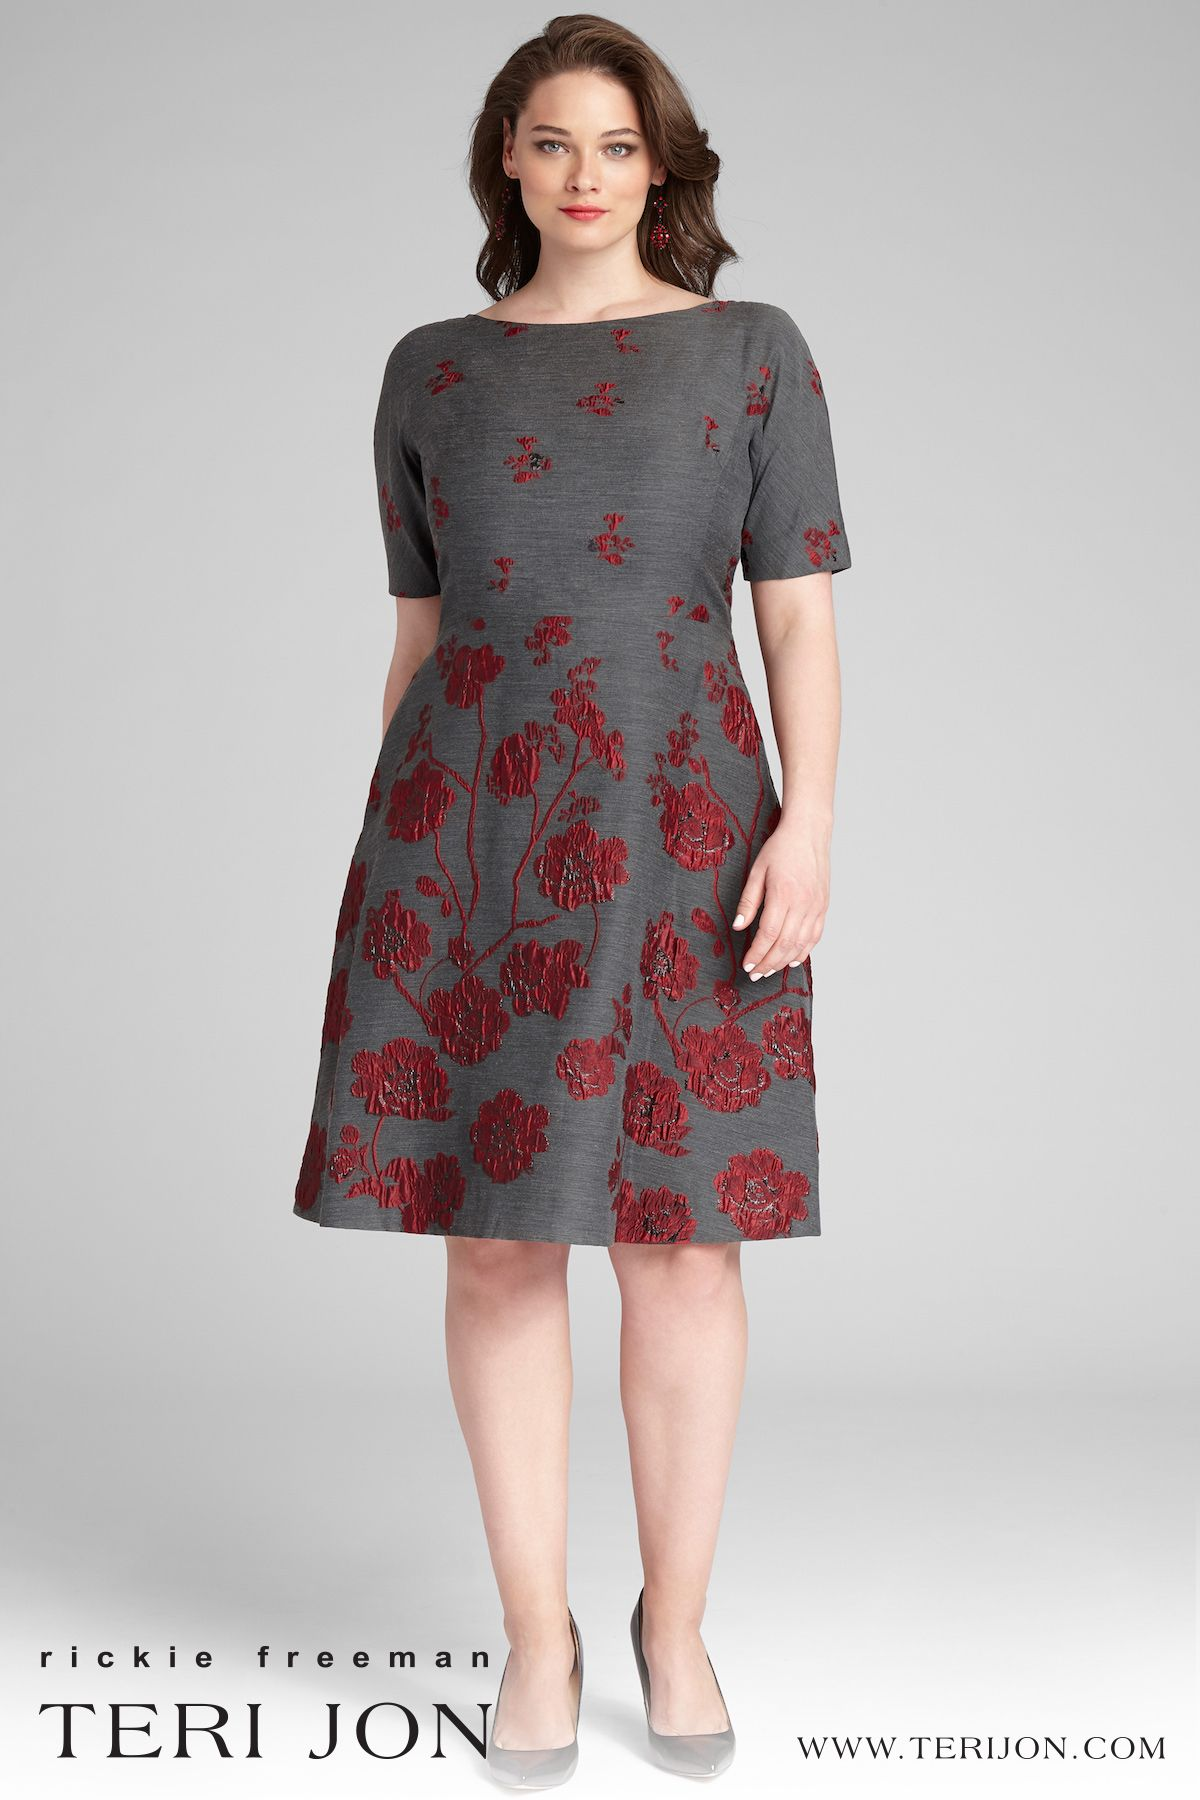 Gorgeous Grey And Red Floral Dress Fit And Flare Cocktail Dress Flare Dress Fit Flare Dress [ 1800 x 1200 Pixel ]